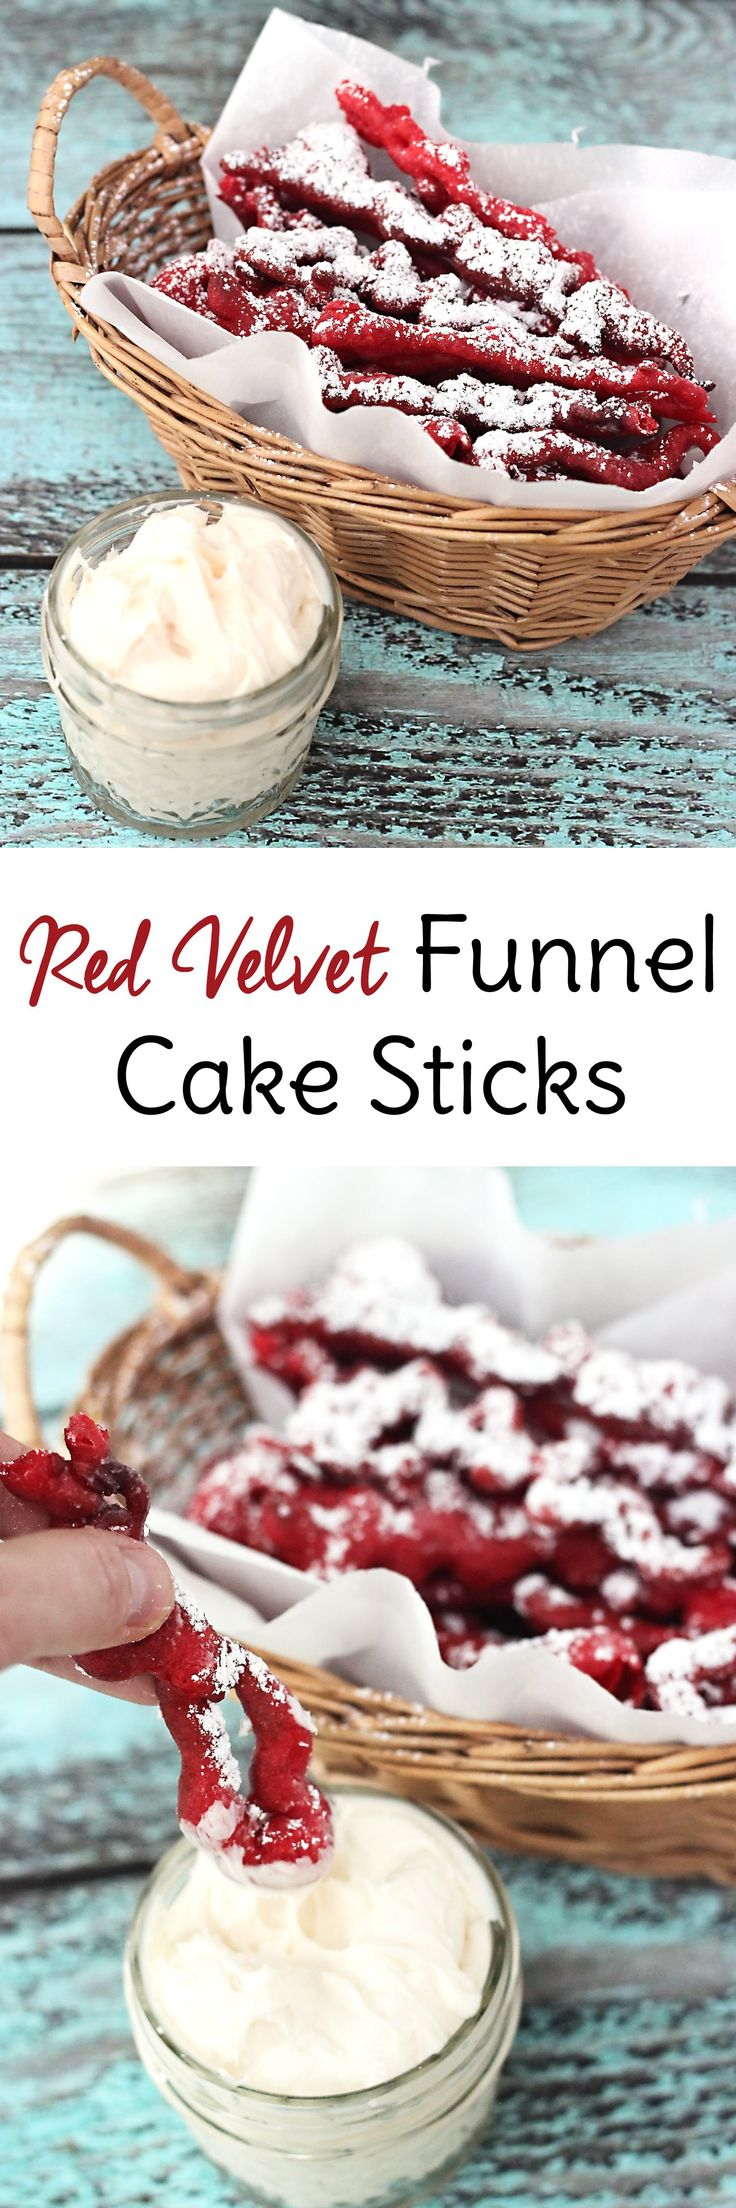 Red Velvet Funnel Cake Sticks: Whether you call them funnel cake fries or funnel cake sticks, this copycat recipe of the beloved fair food is served red velvet style with cream cheese frosting for dipping. It's a dessert to die for!